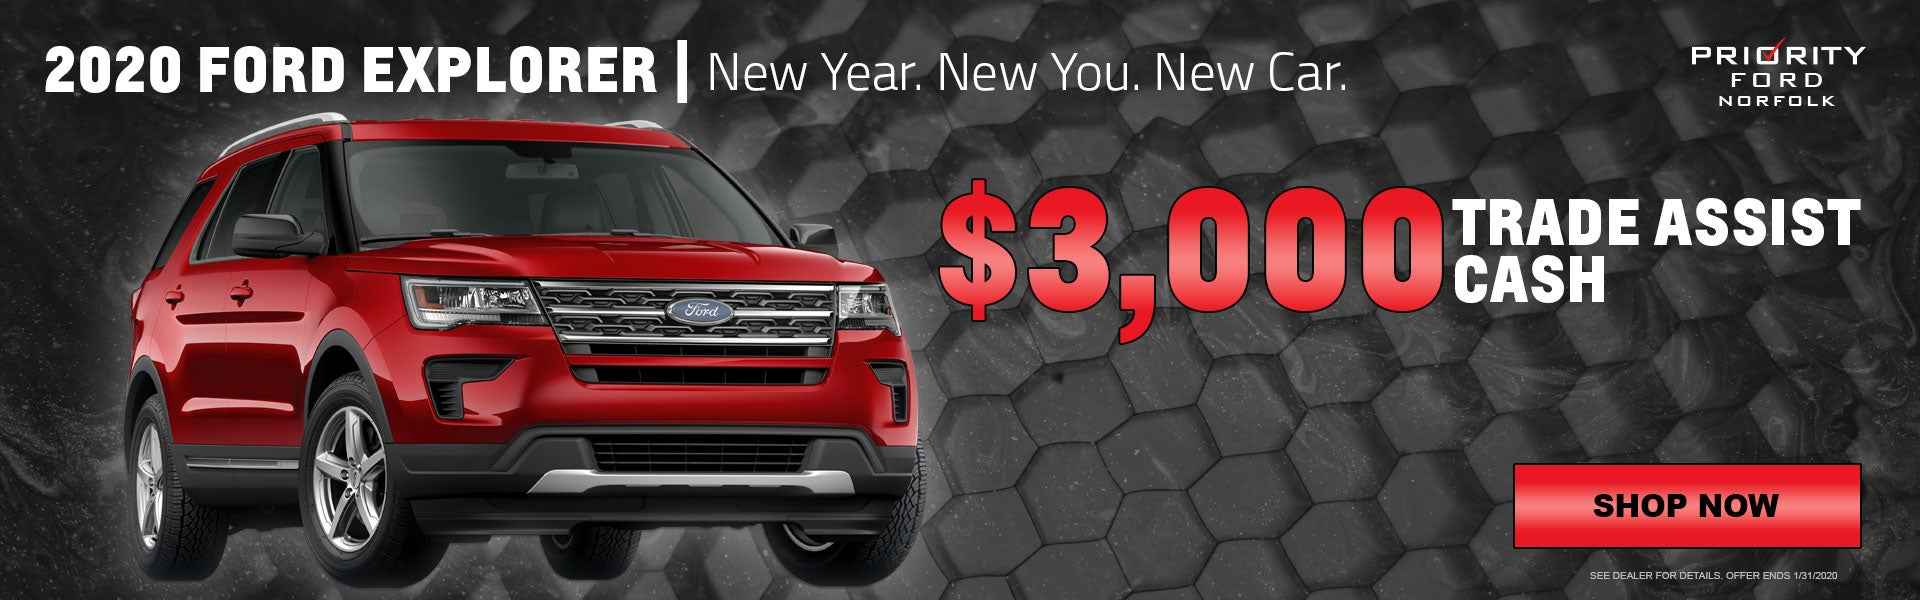 Ford Dealer Inventory Search >> Ford Dealer In Norfolk Va Used Cars Norfolk Priority Ford